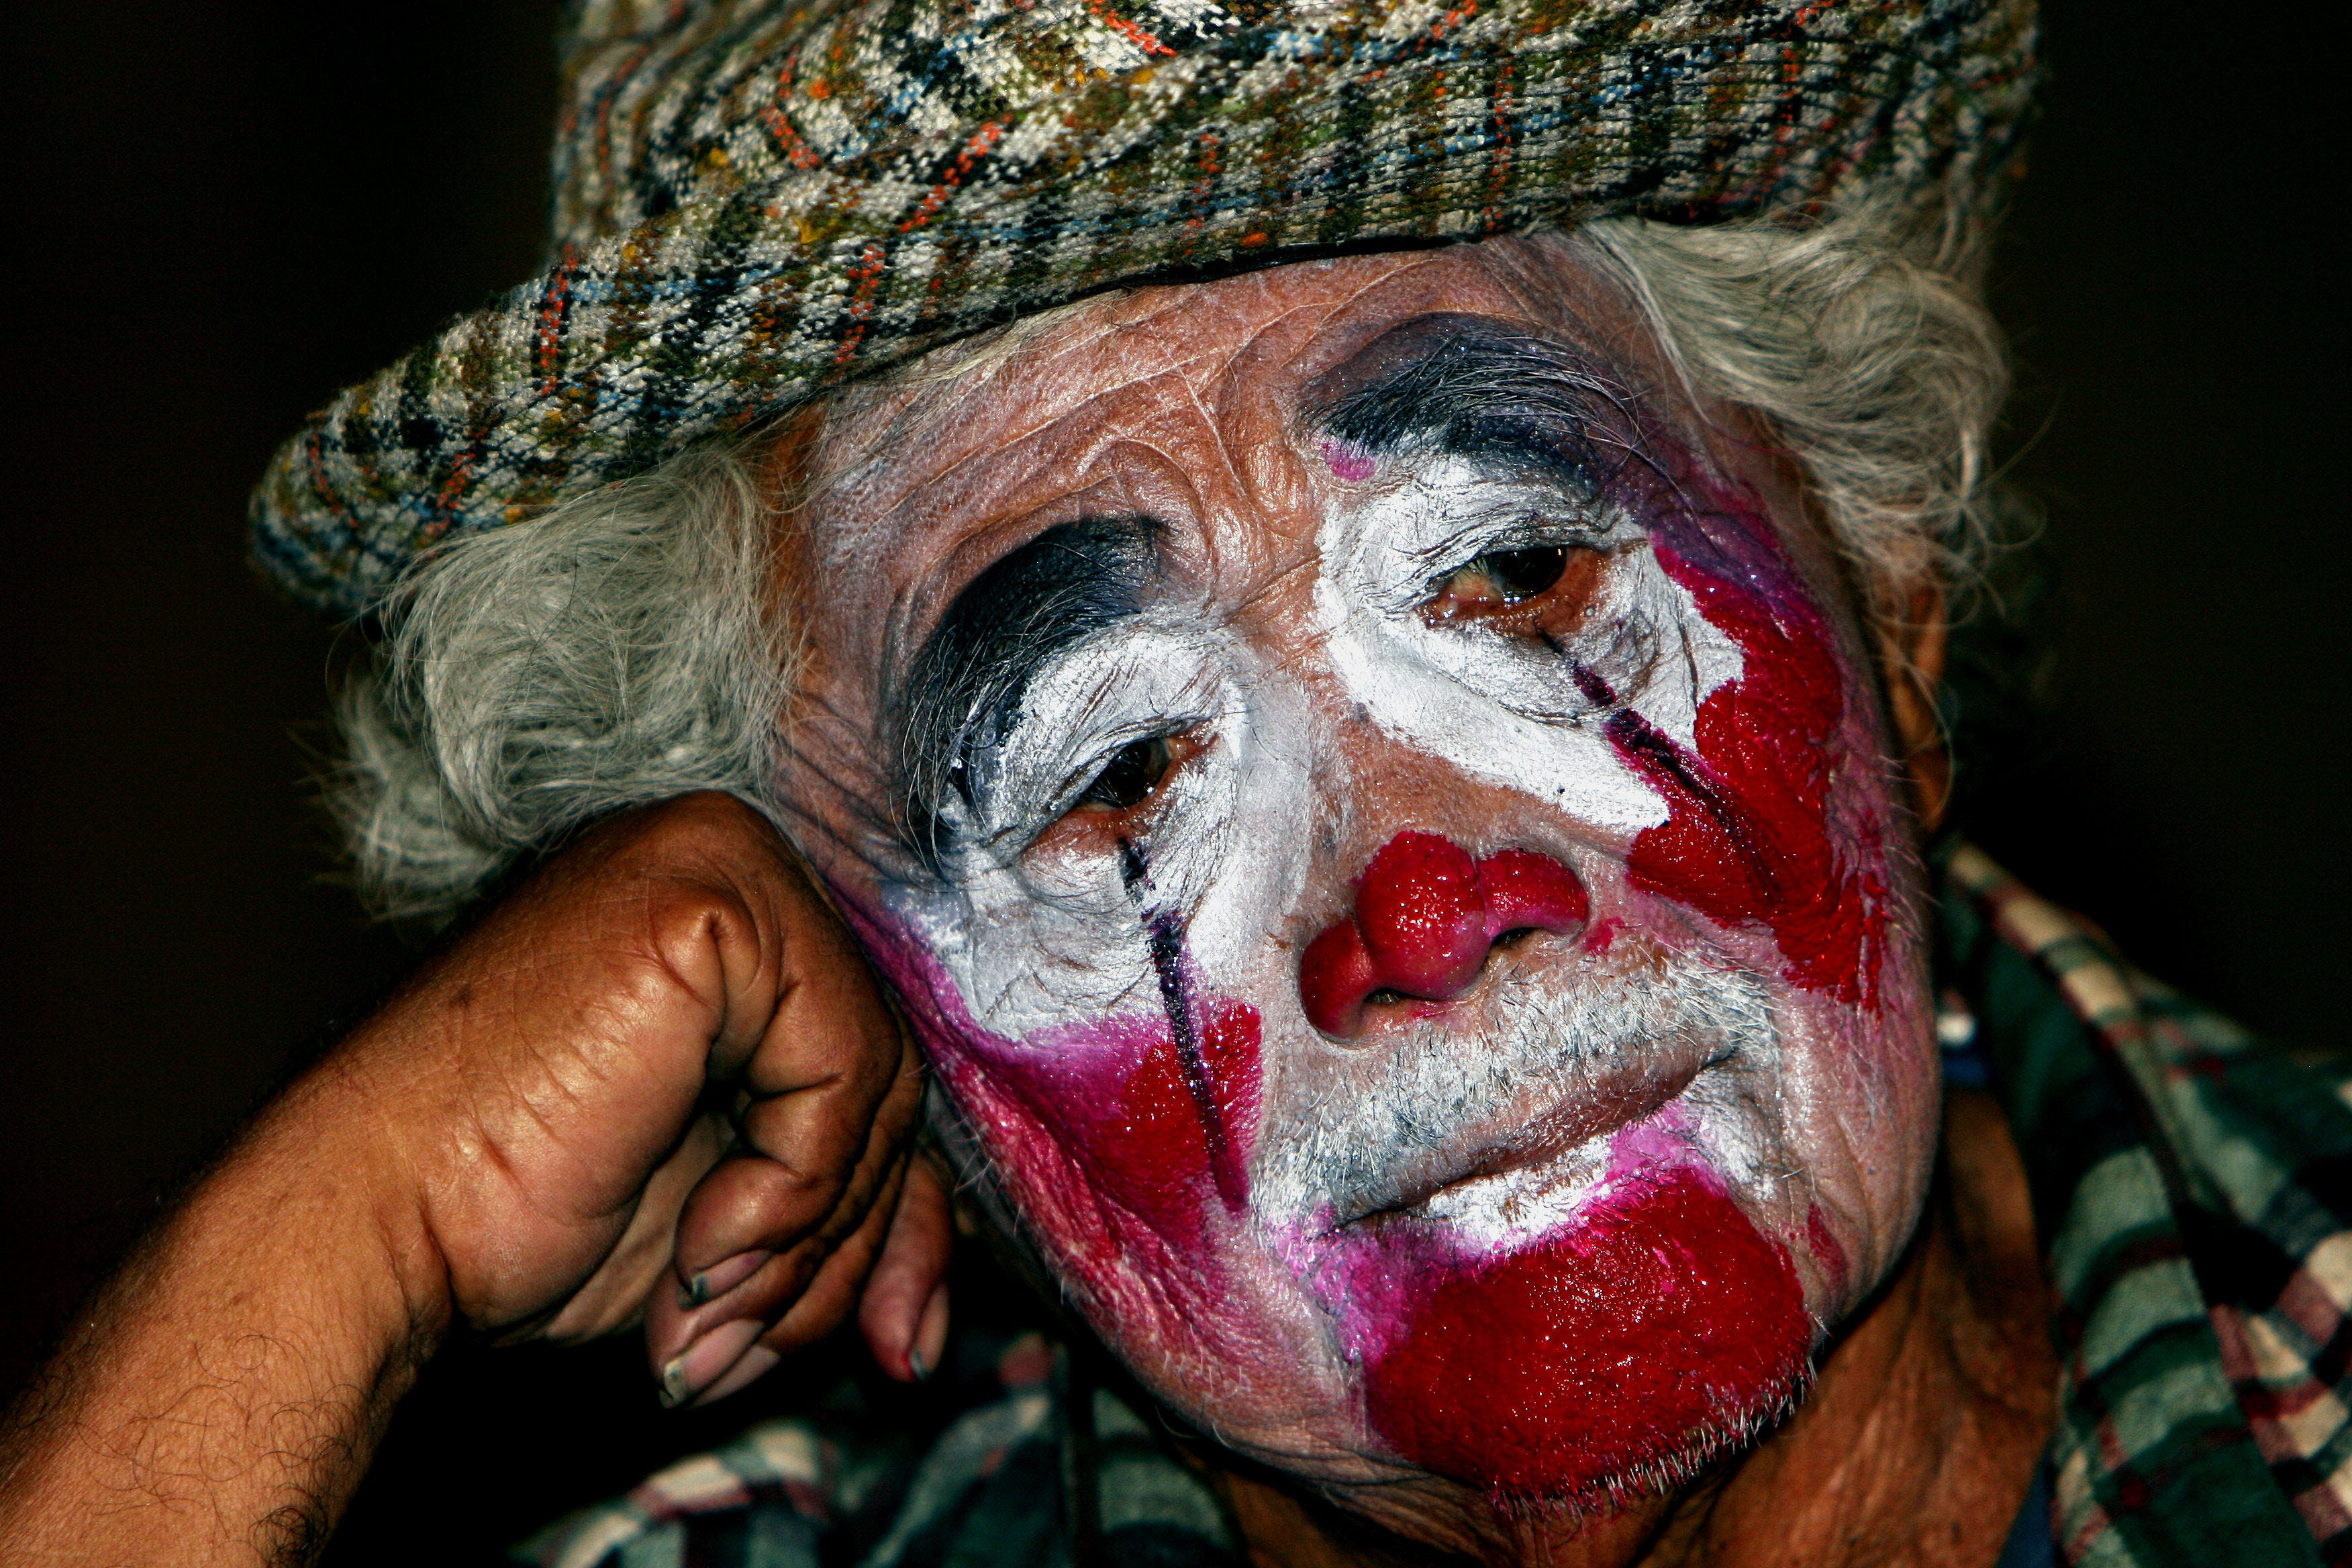 sad old clown